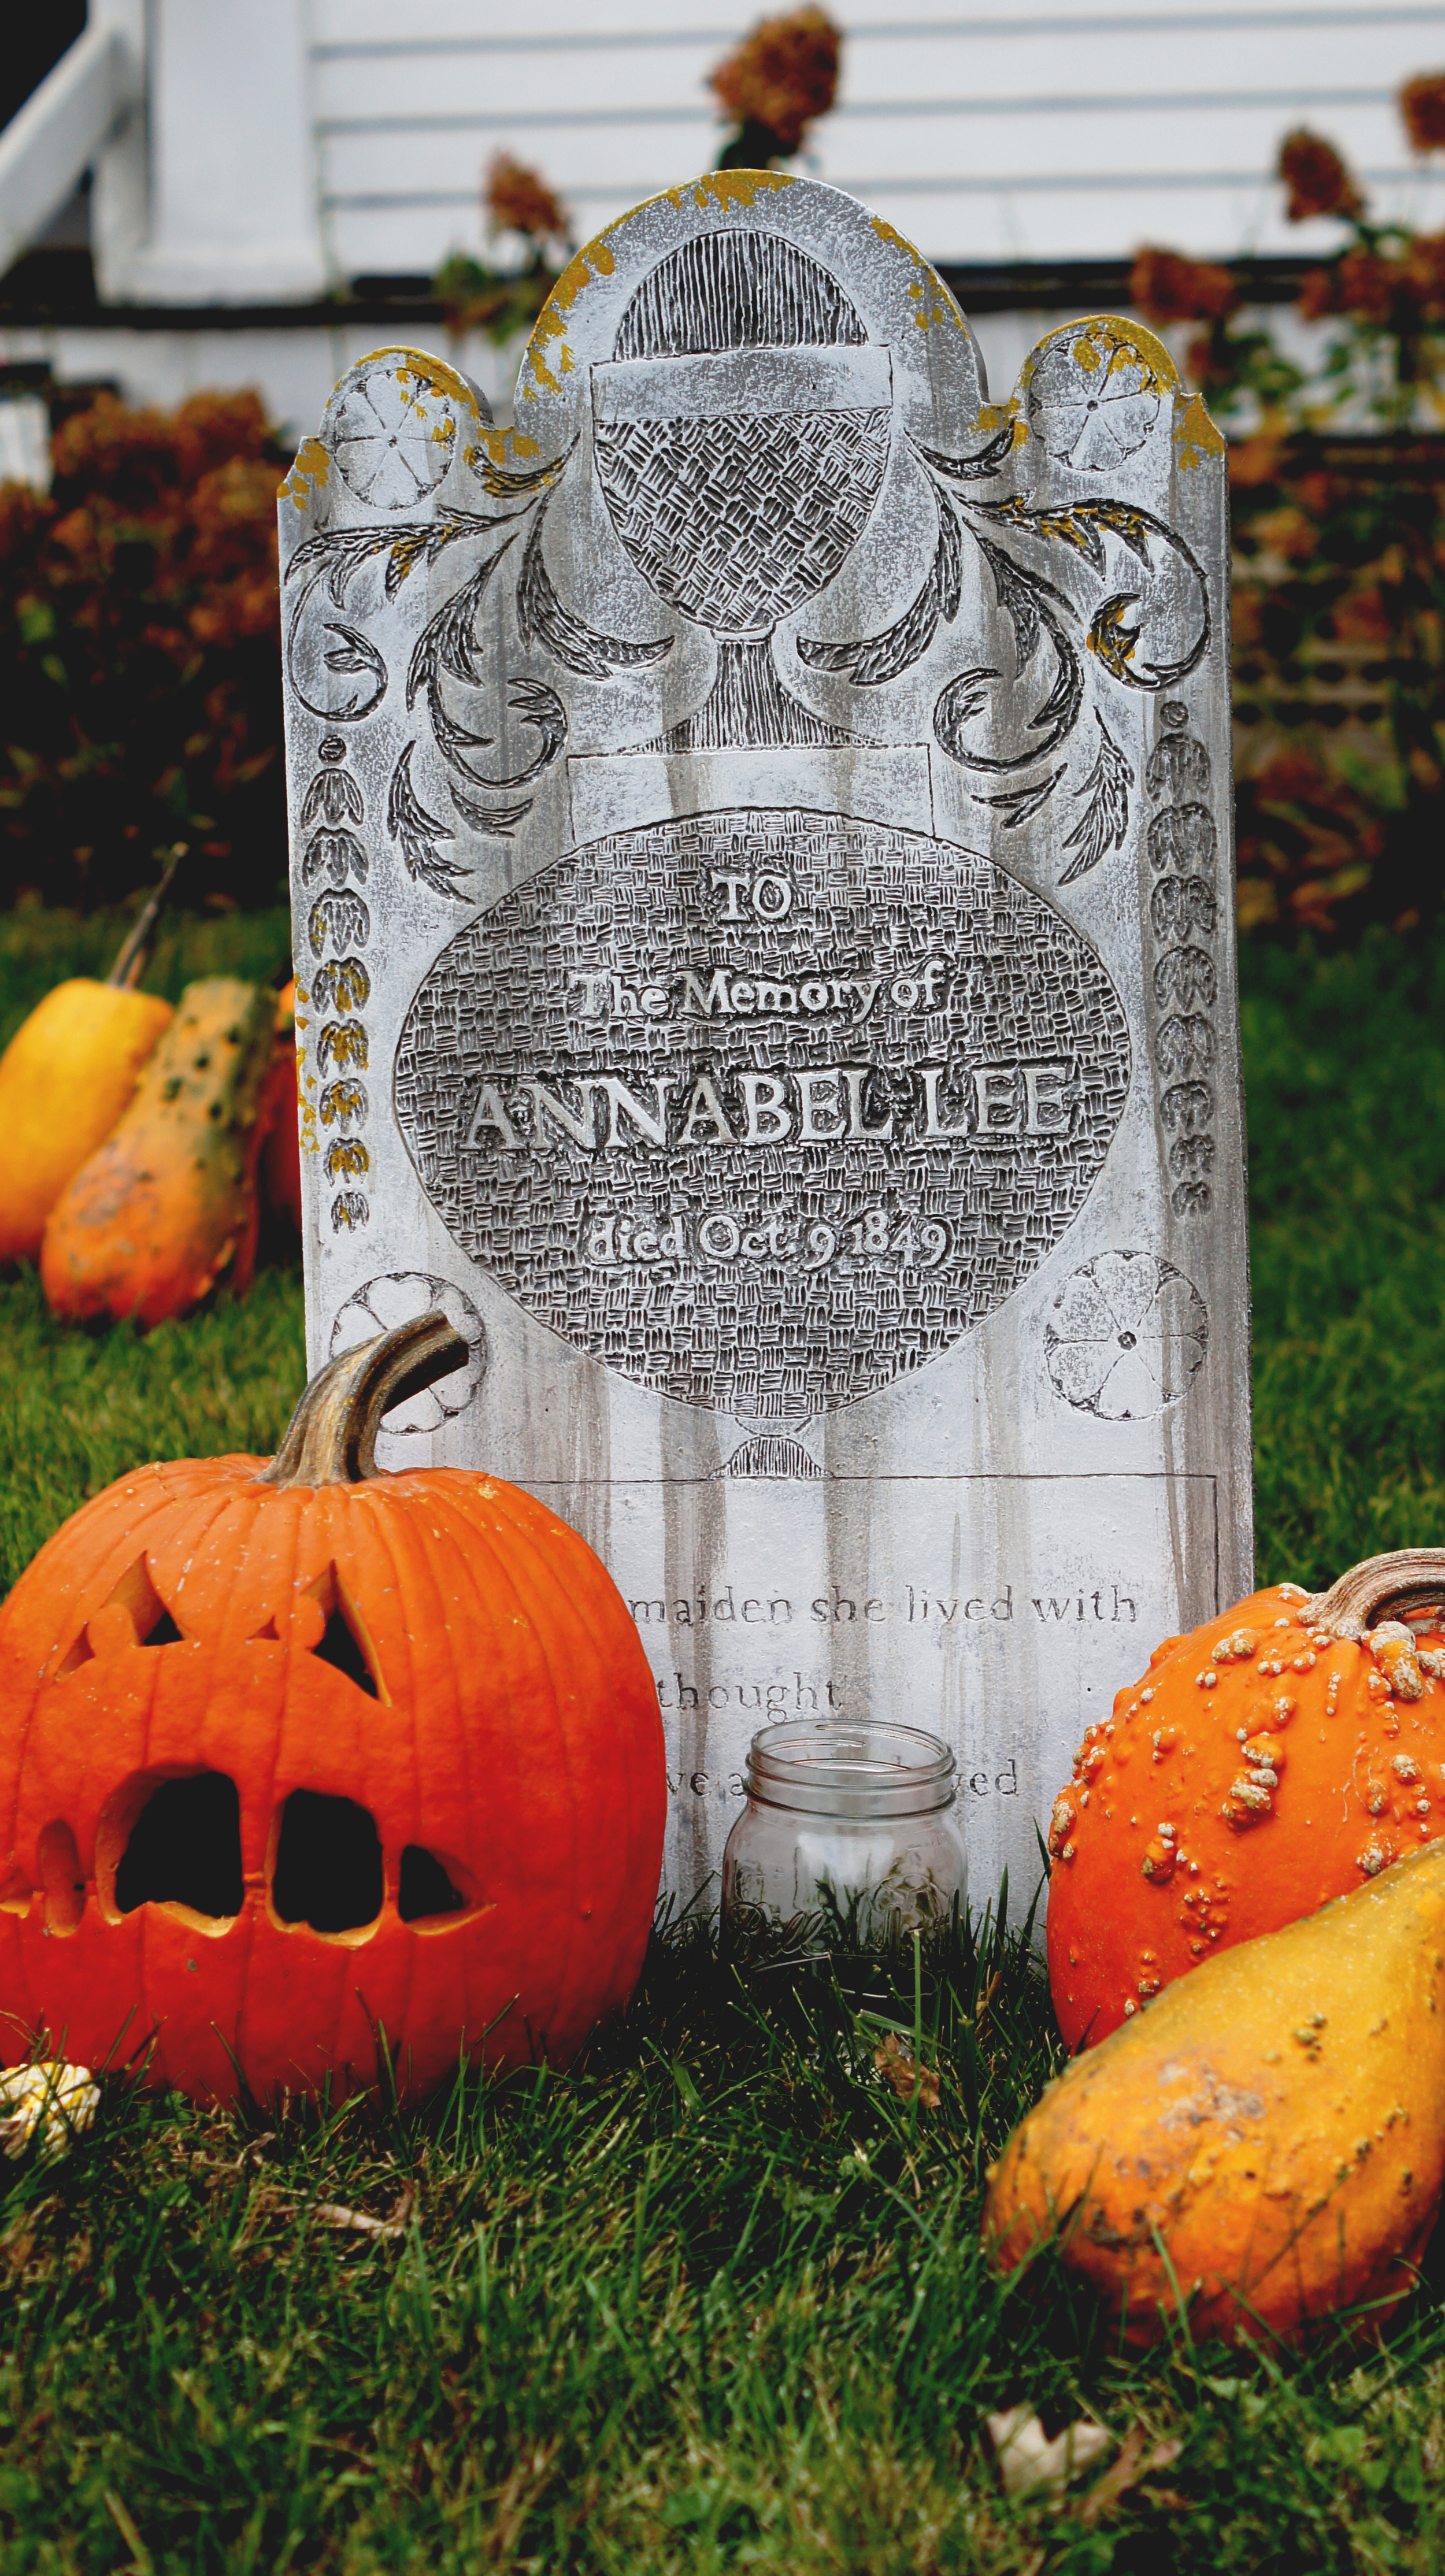 Acanthus House | Annabel Lee Tombstone